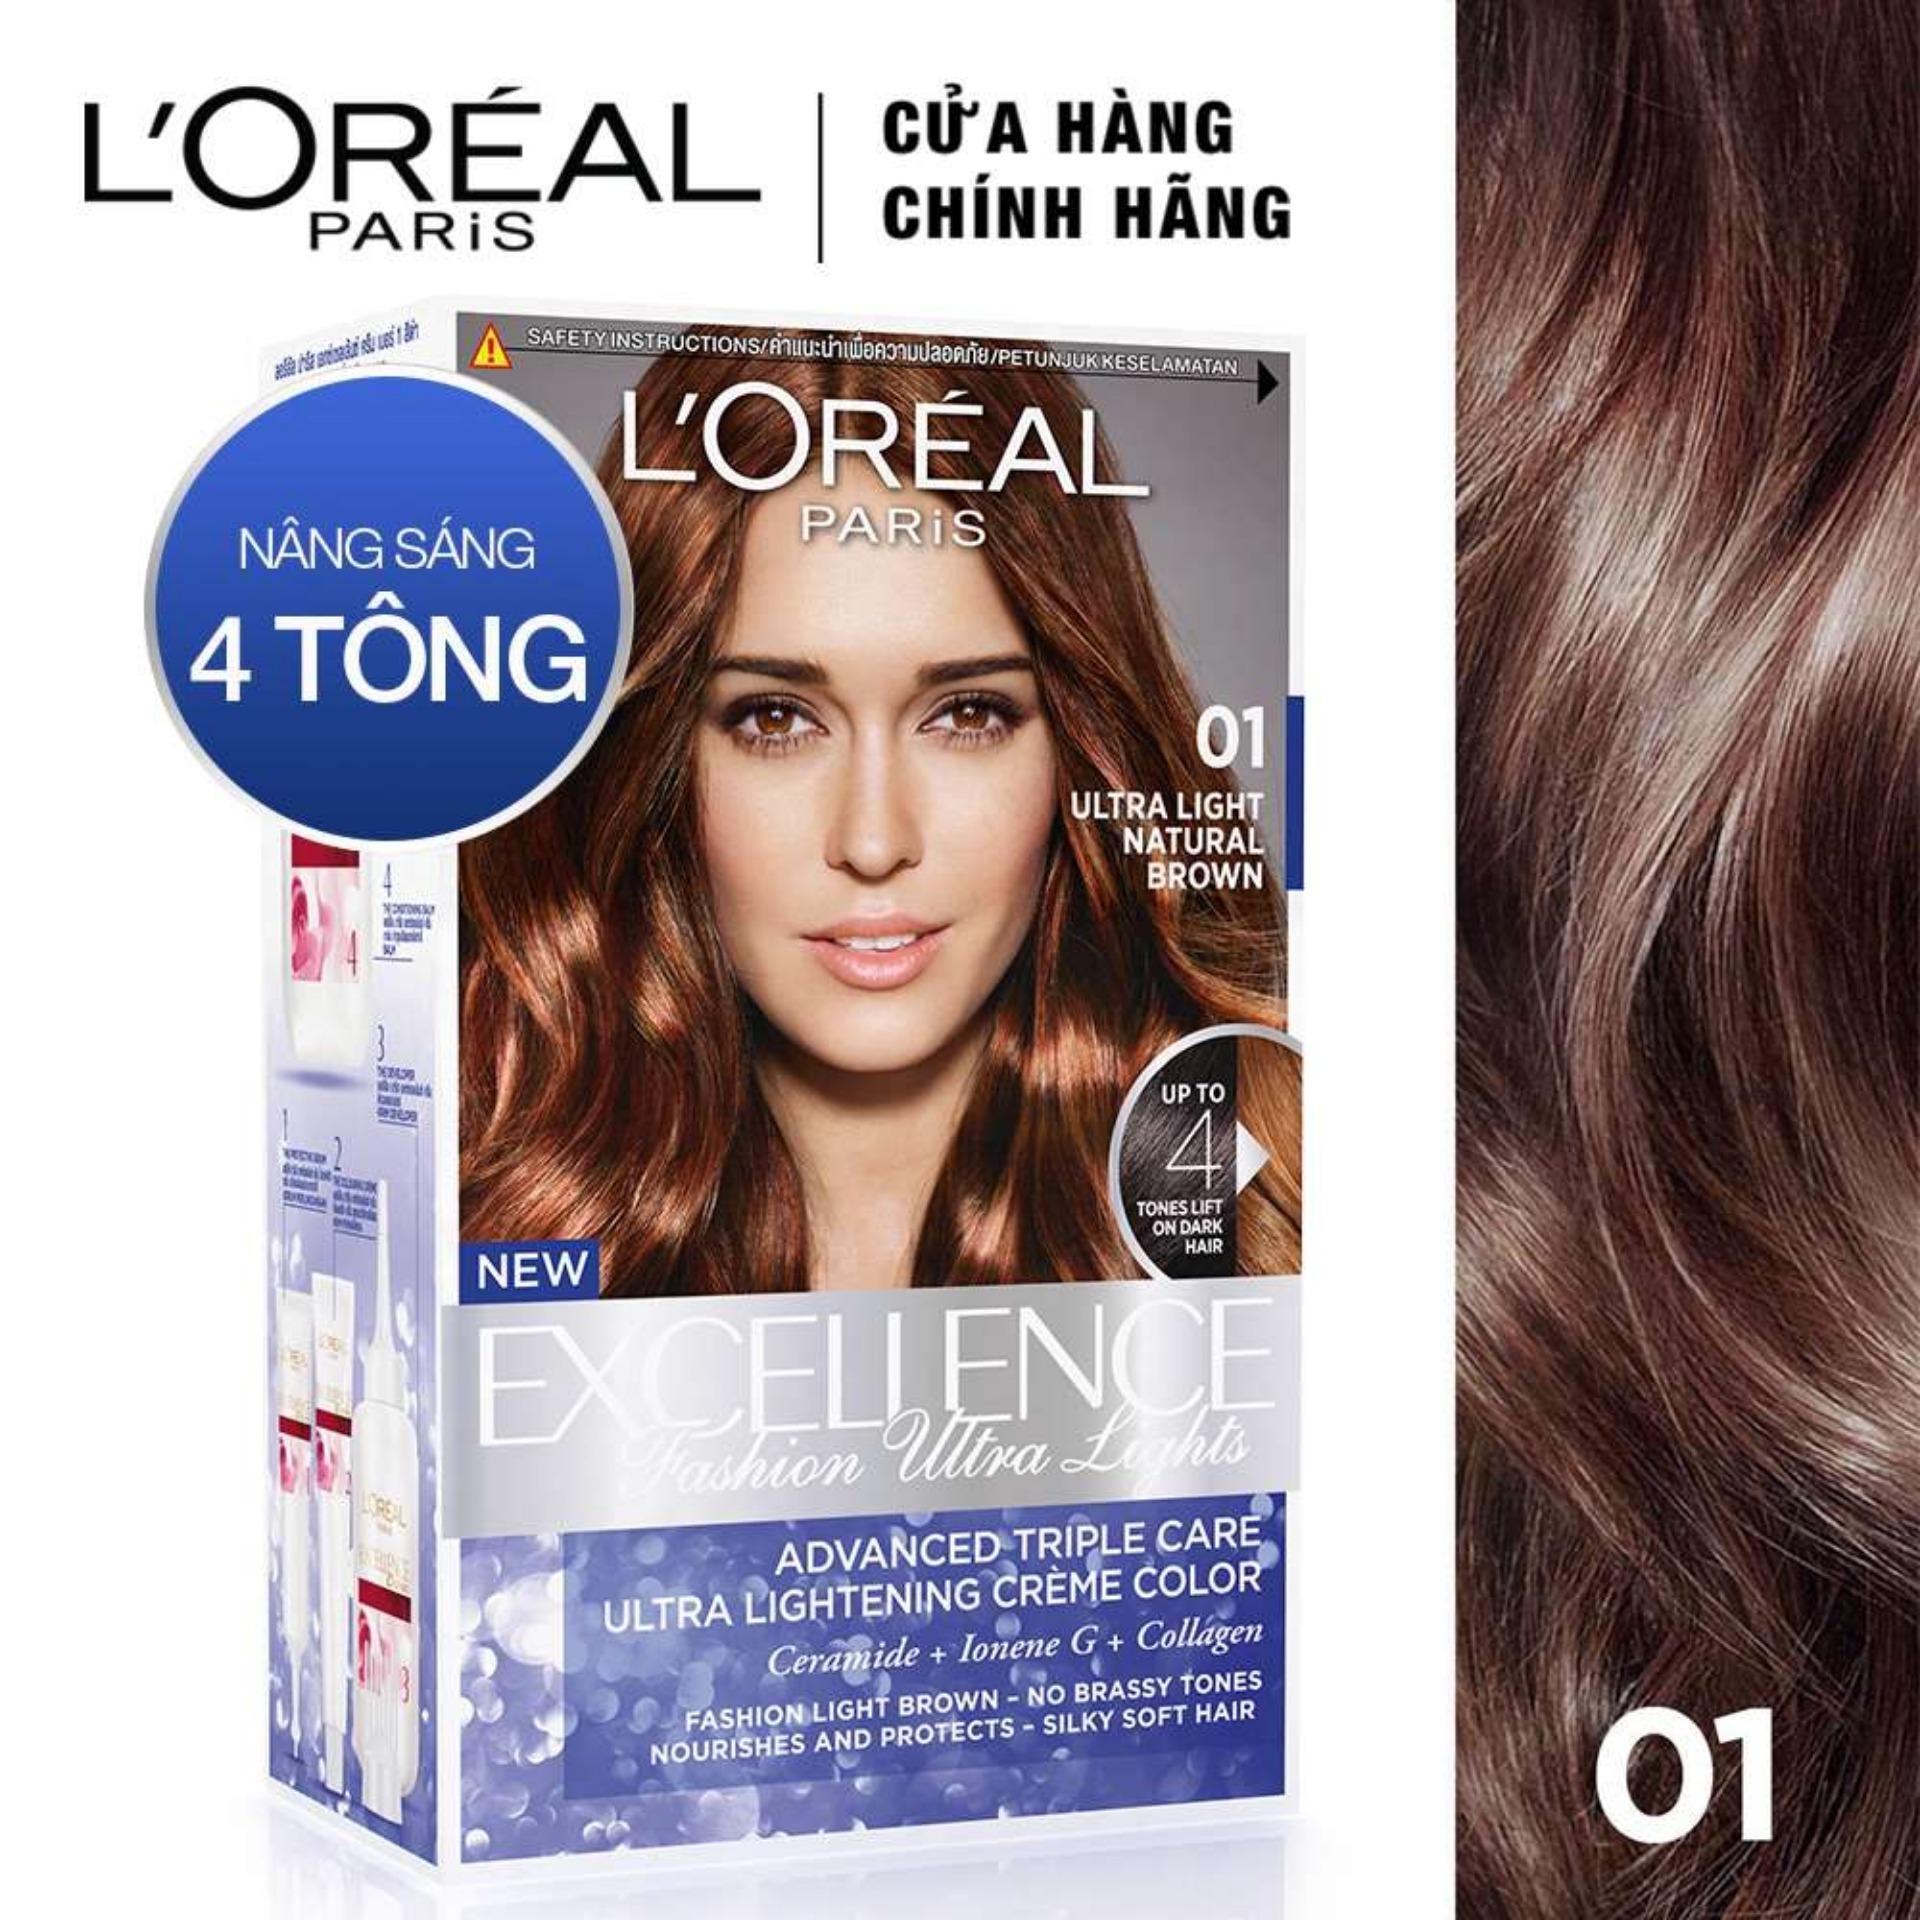 Kem nhuộm tóc nâng sáng LOreal Paris Excellence Fashion Ultra Light 172ml